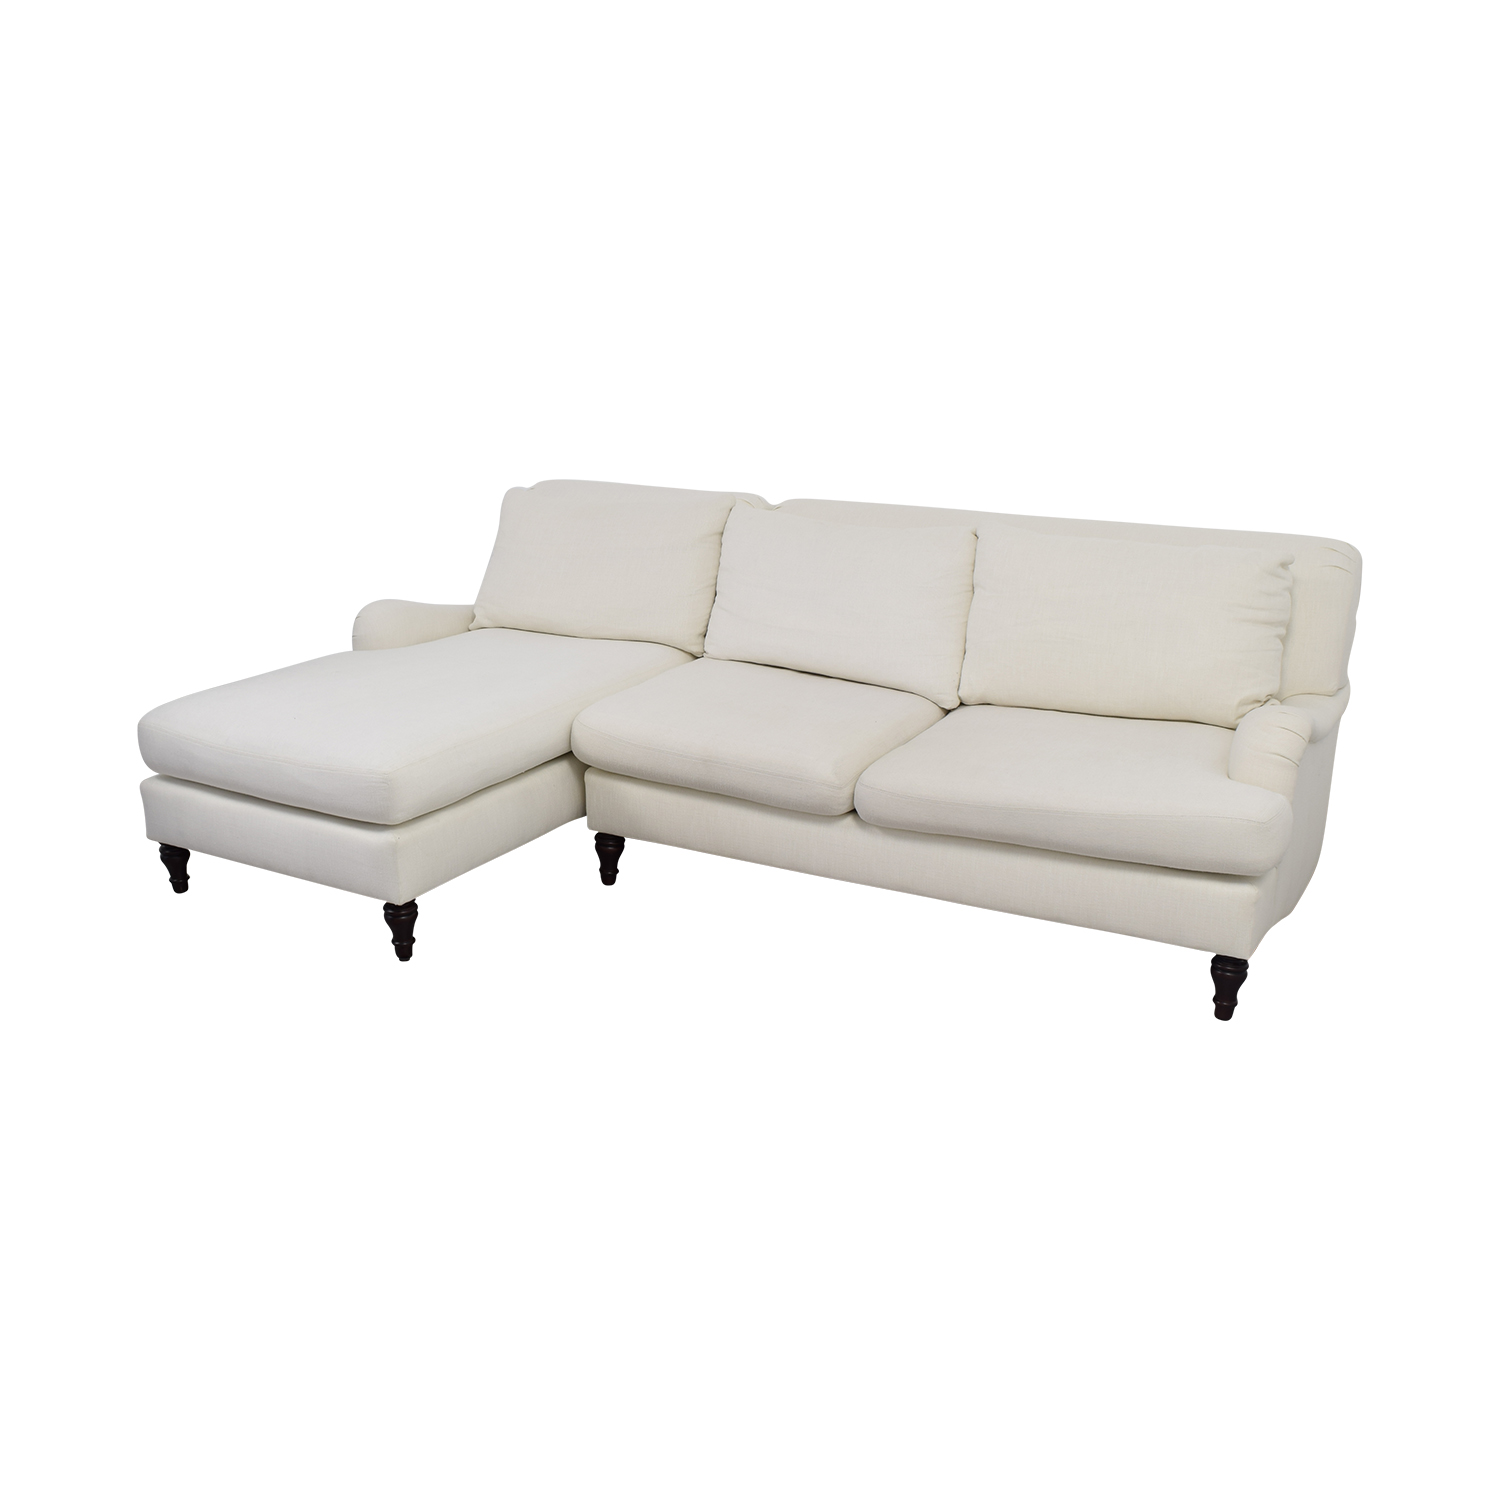 pottery barn chaise sofa sectional leather armrest covers 79 off carlisle white